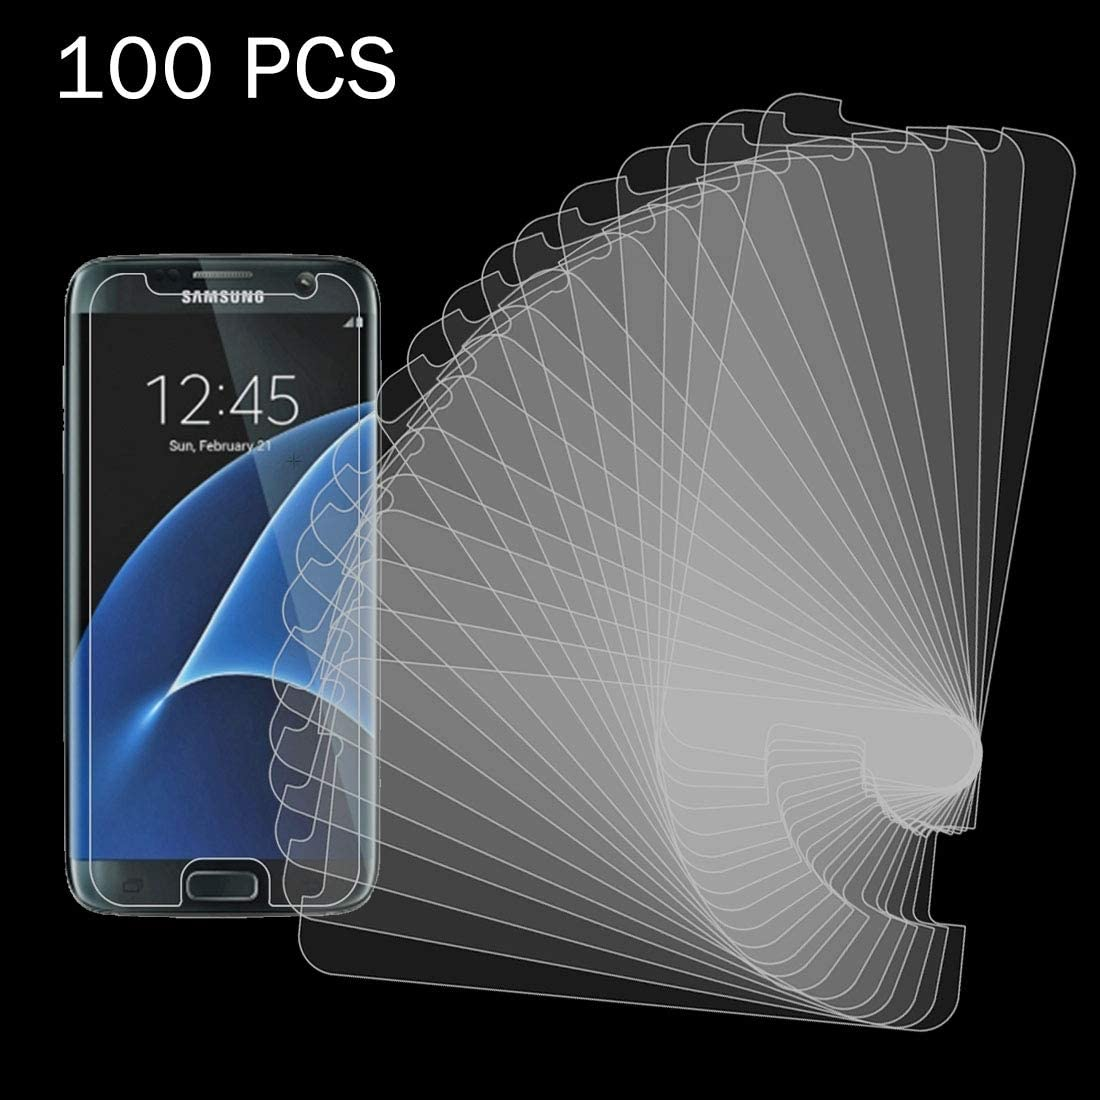 CHENNAN 100 PCS for Galaxy S7 G930 0.26mm 9H Surface Hardness 2.5D Explosion-Proof Tempered Glass Non-Full Screen Film Screen Tempered Glass Film